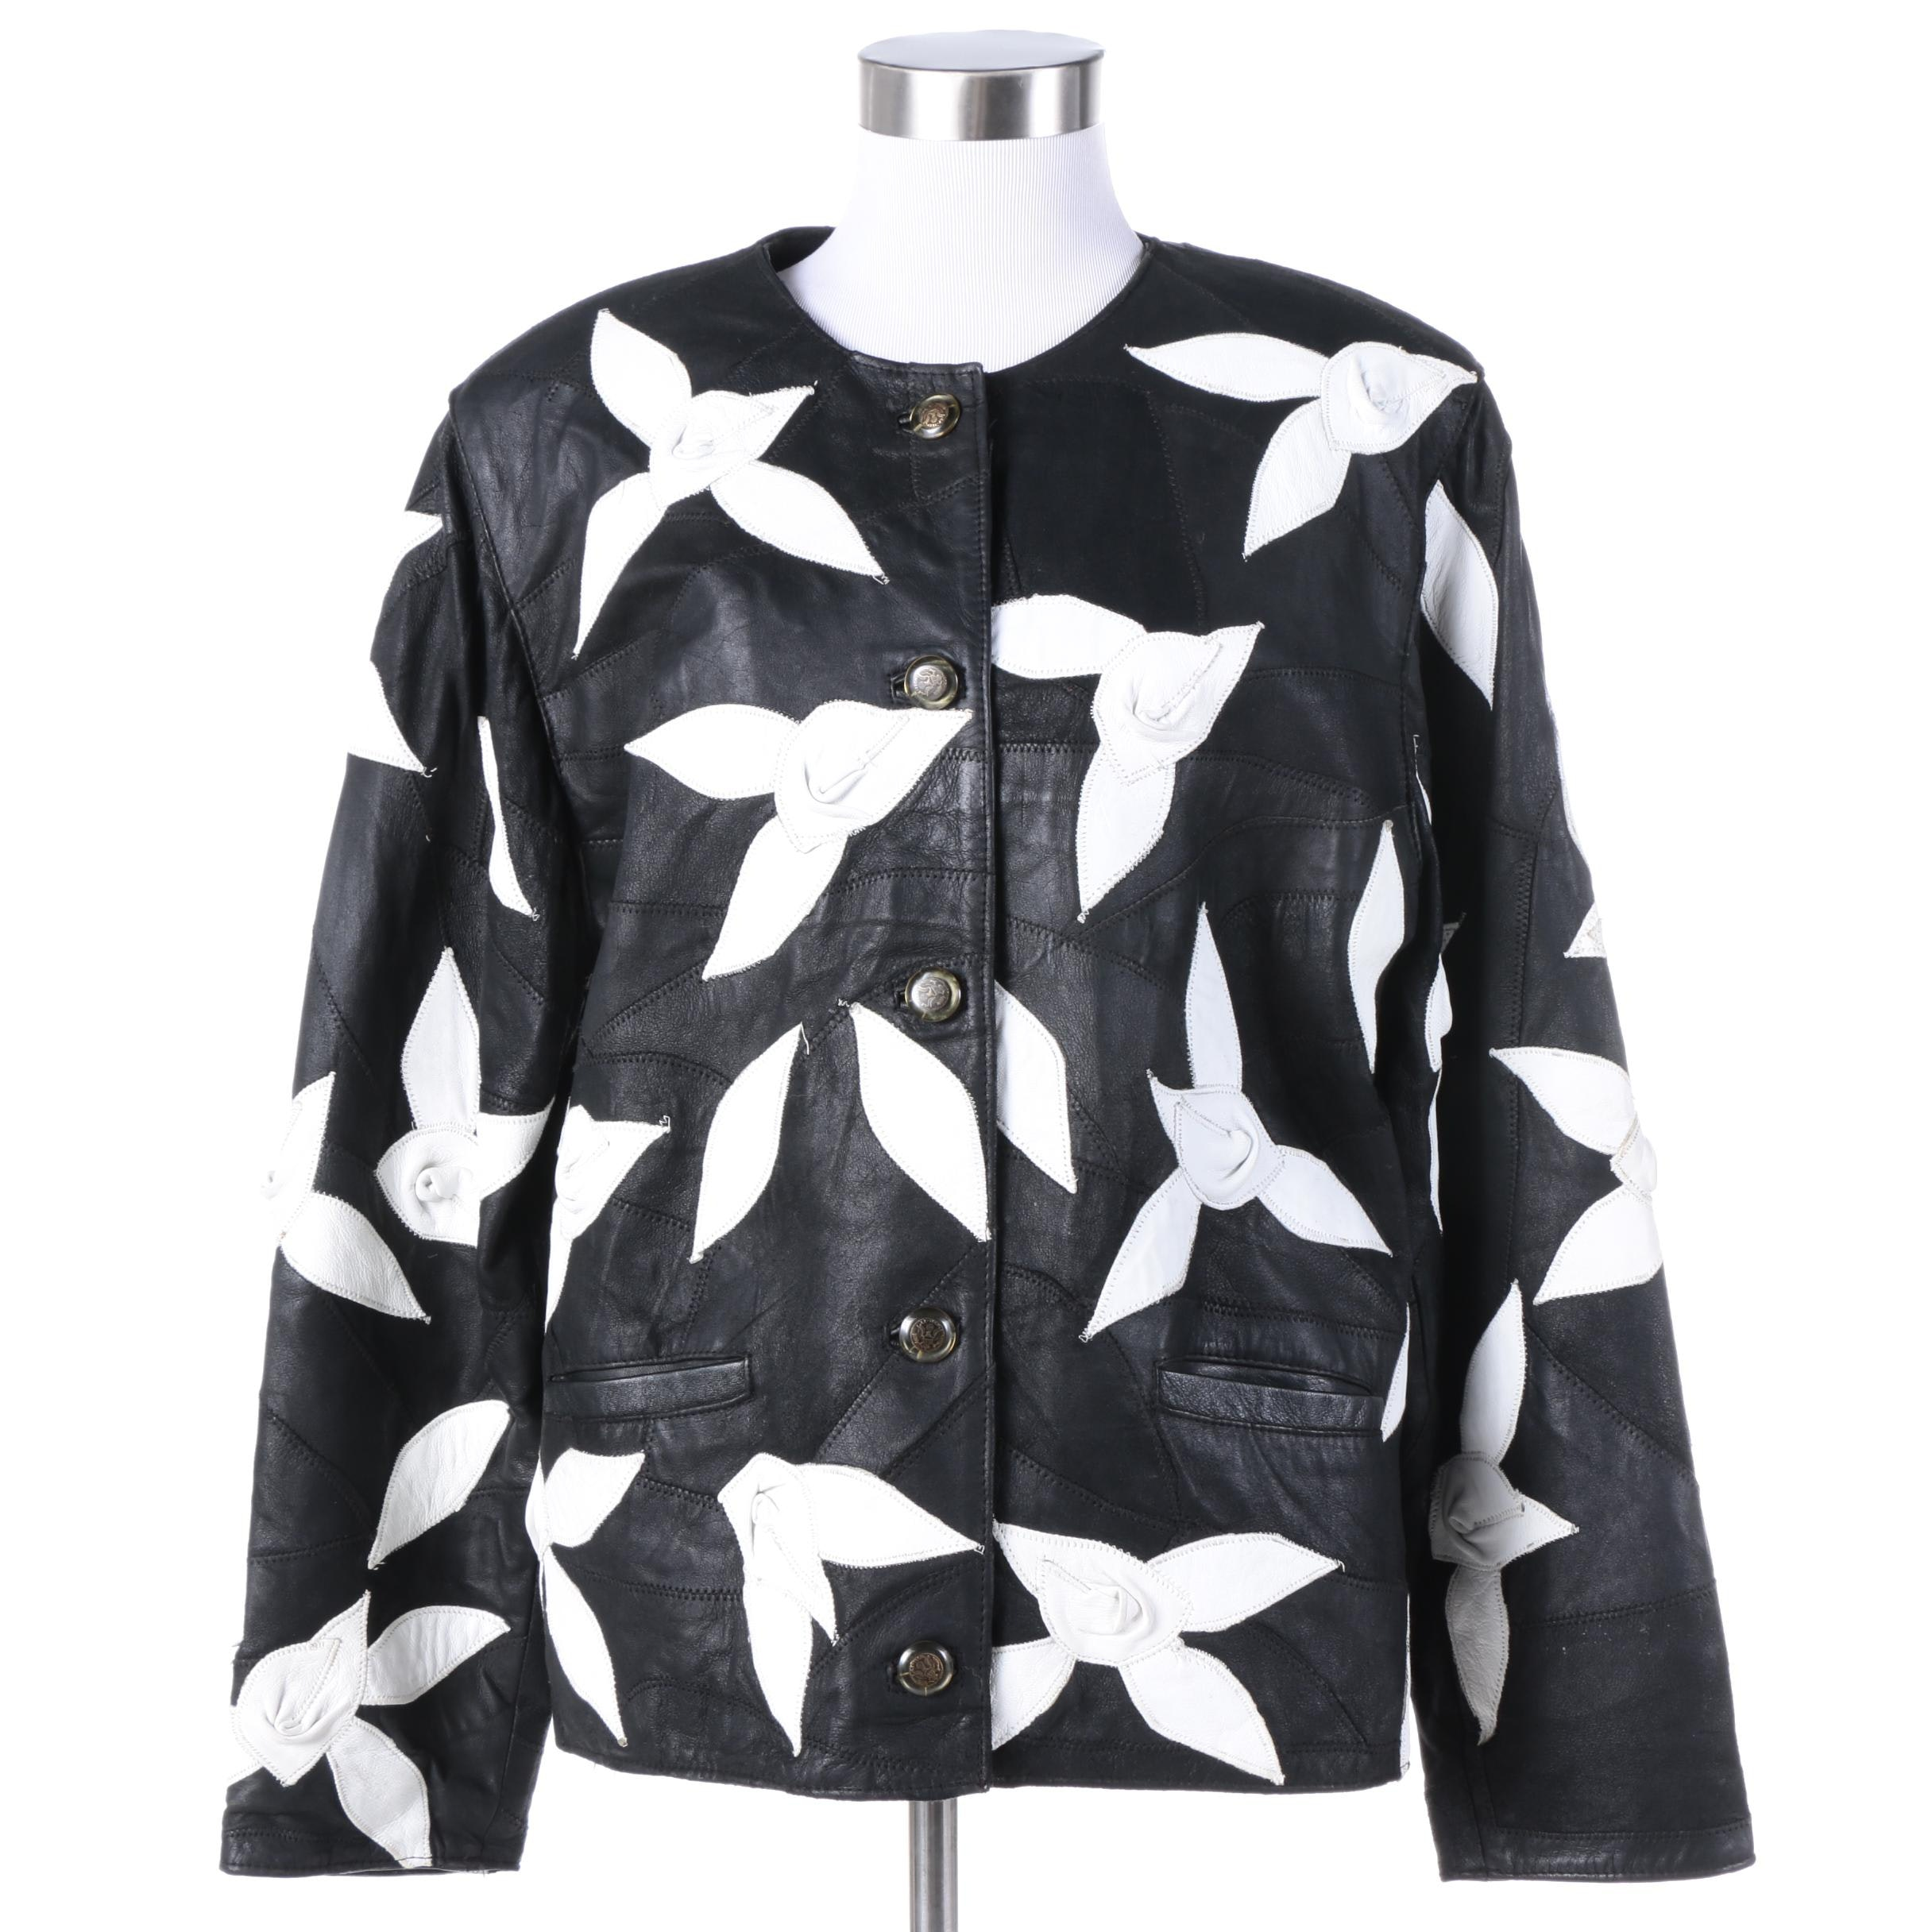 Women's Black Leather Jacket with White Appliqued Flowers